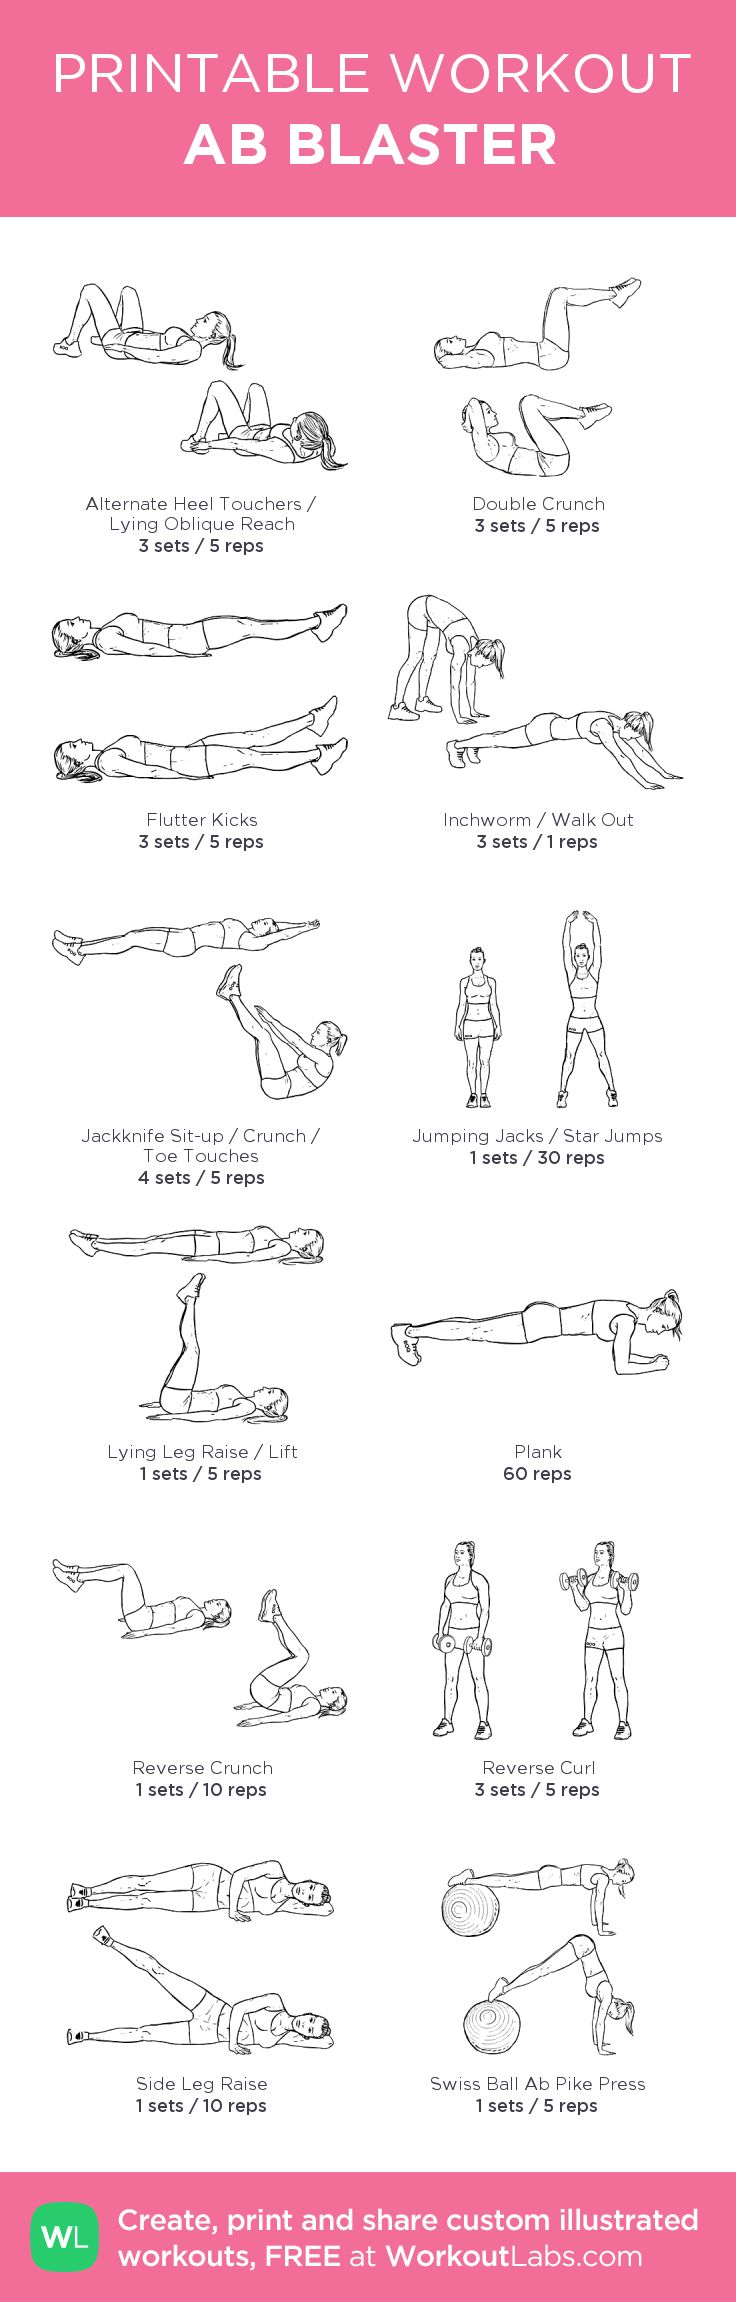 AB BLASTER –my custom workout created at WorkoutLabs.com • Click through to download as printable PDF! #customworkout